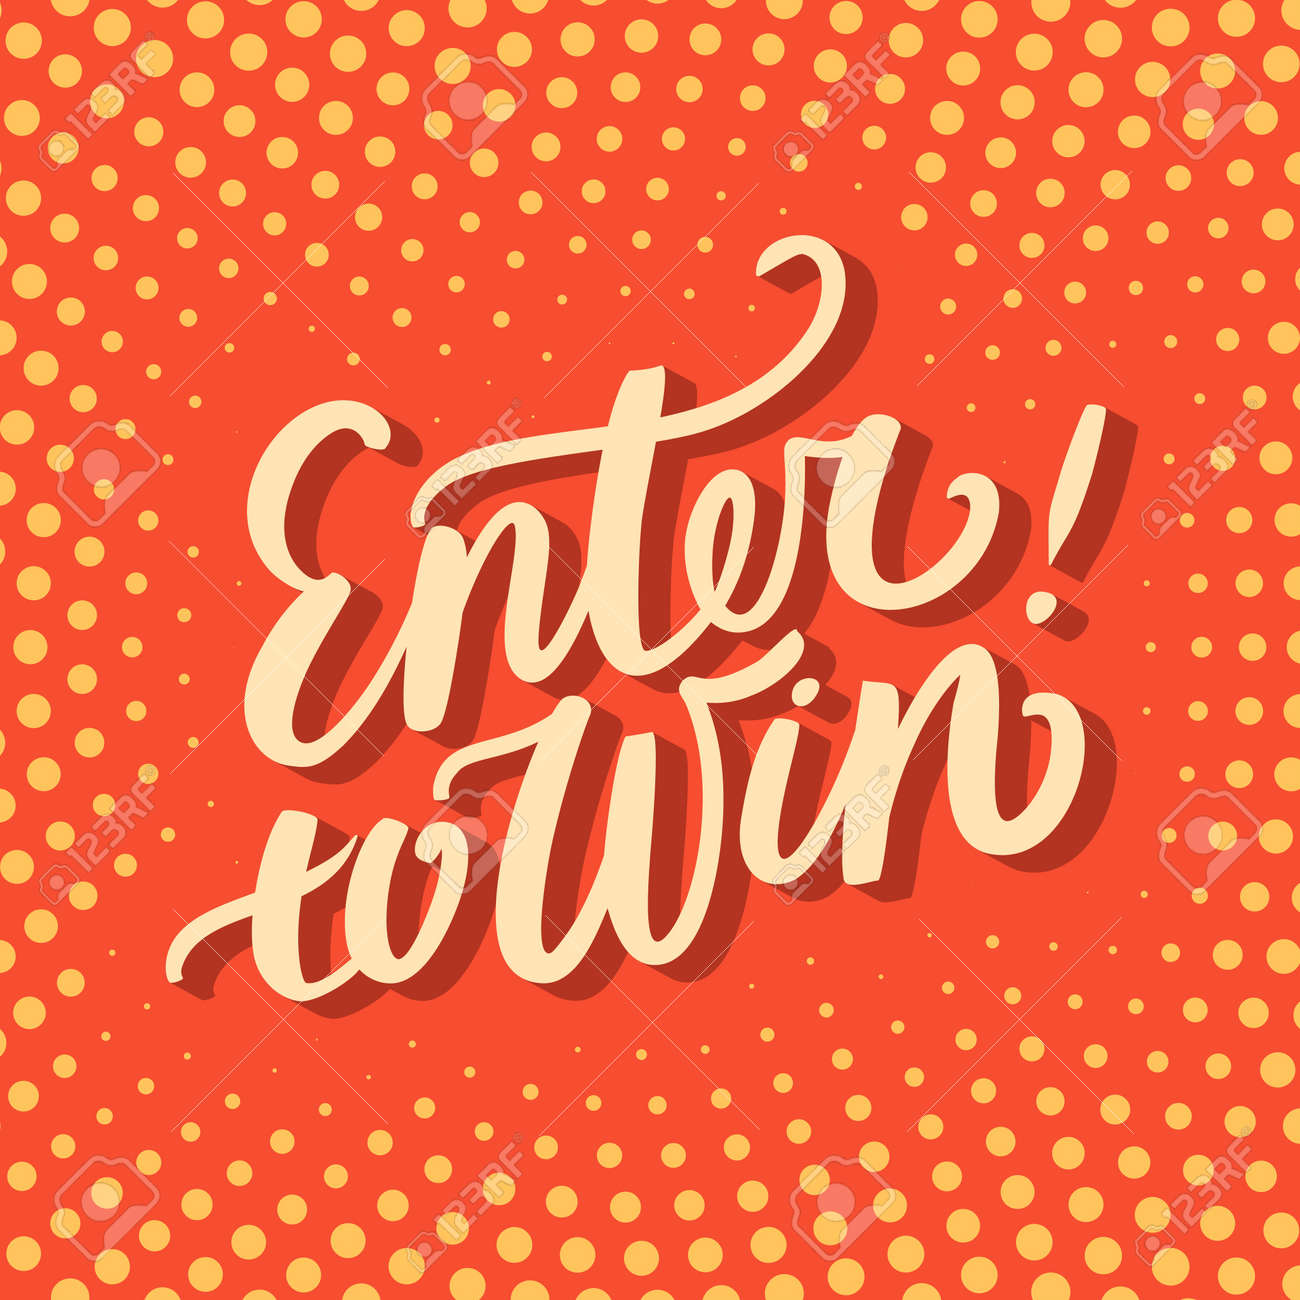 enter to win stock photos pictures royalty enter to win enter to win enter to win hand lettering vector hand drawn illustration